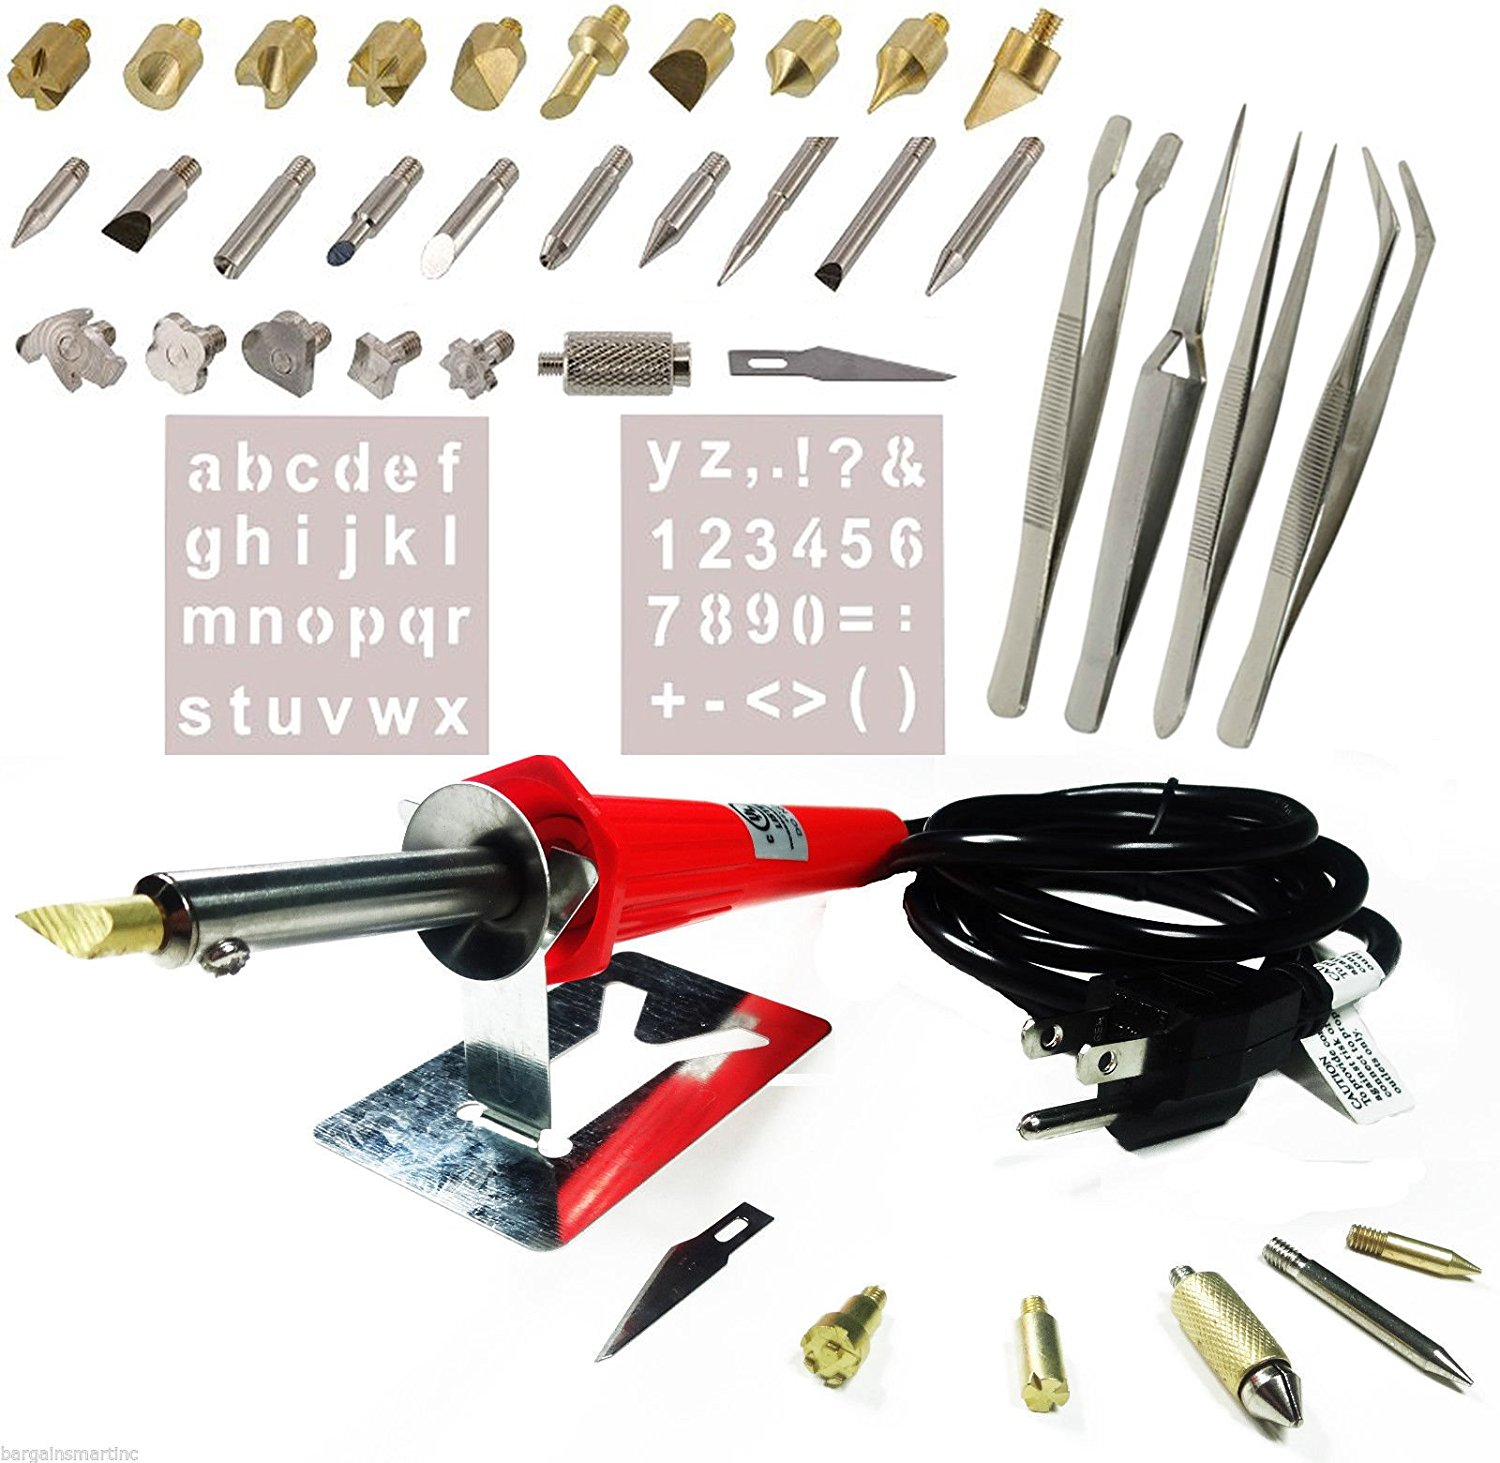 40PCS Wood Burning Pen Set Wood Burning Soldering Chiseled Tips and Tweezers